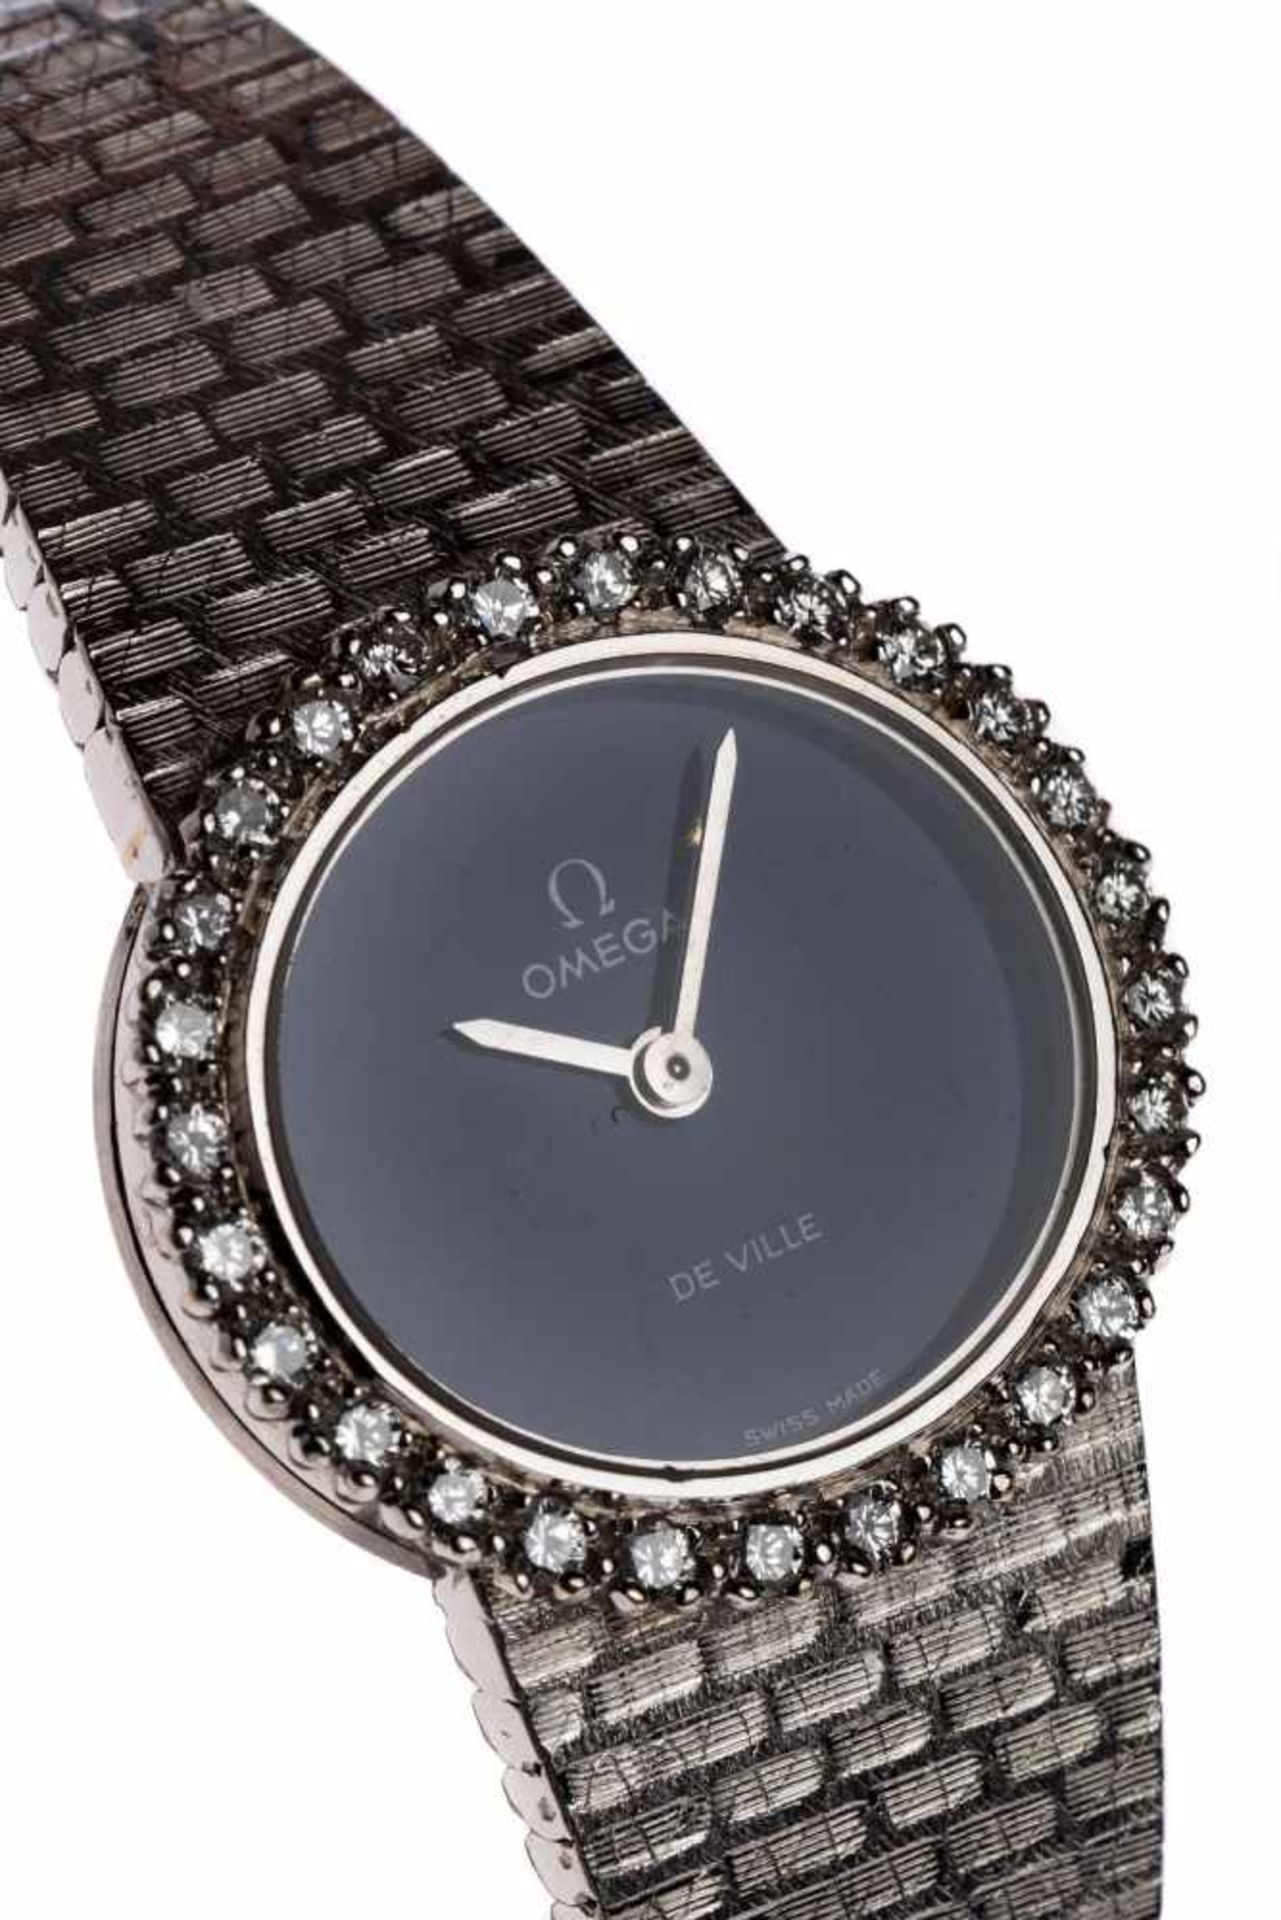 Los 87 - Omega De Ville18kt white gold jewelery watch from Omega with Lapislauzulis stone dial 43 grams